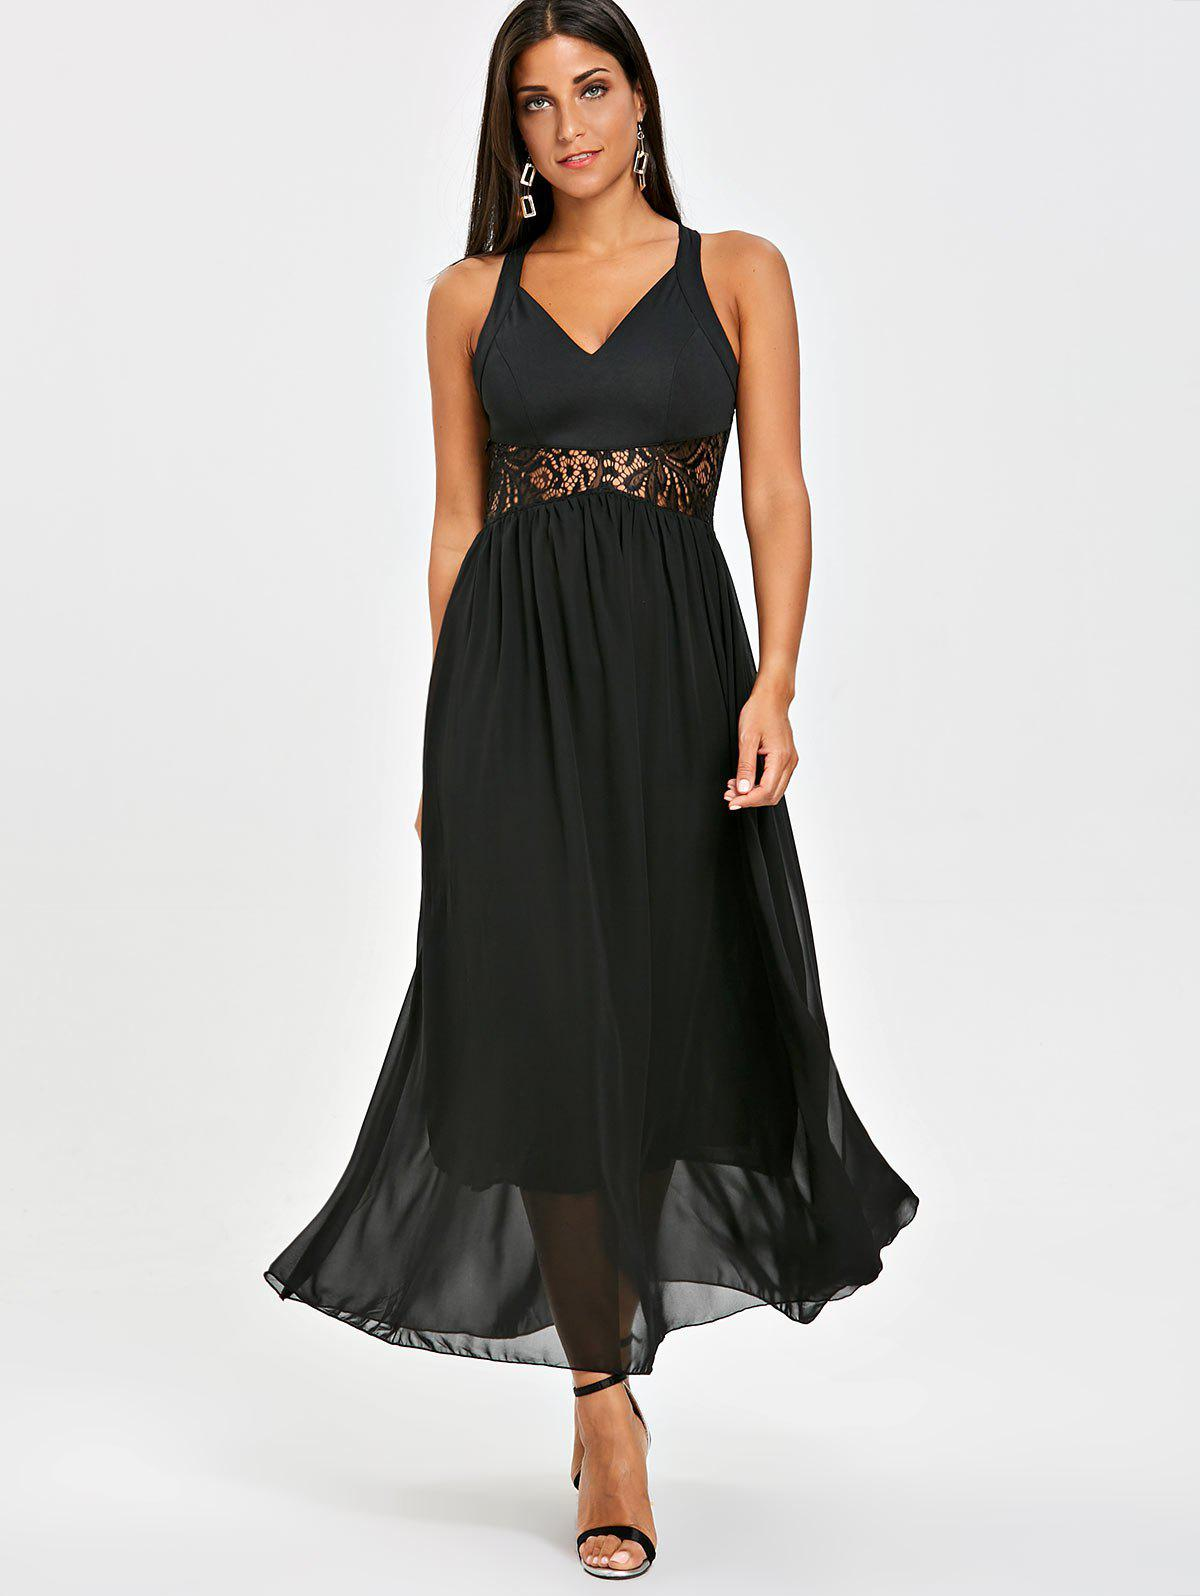 Lace Insert Maxi Chiffon Dress - BLACK L